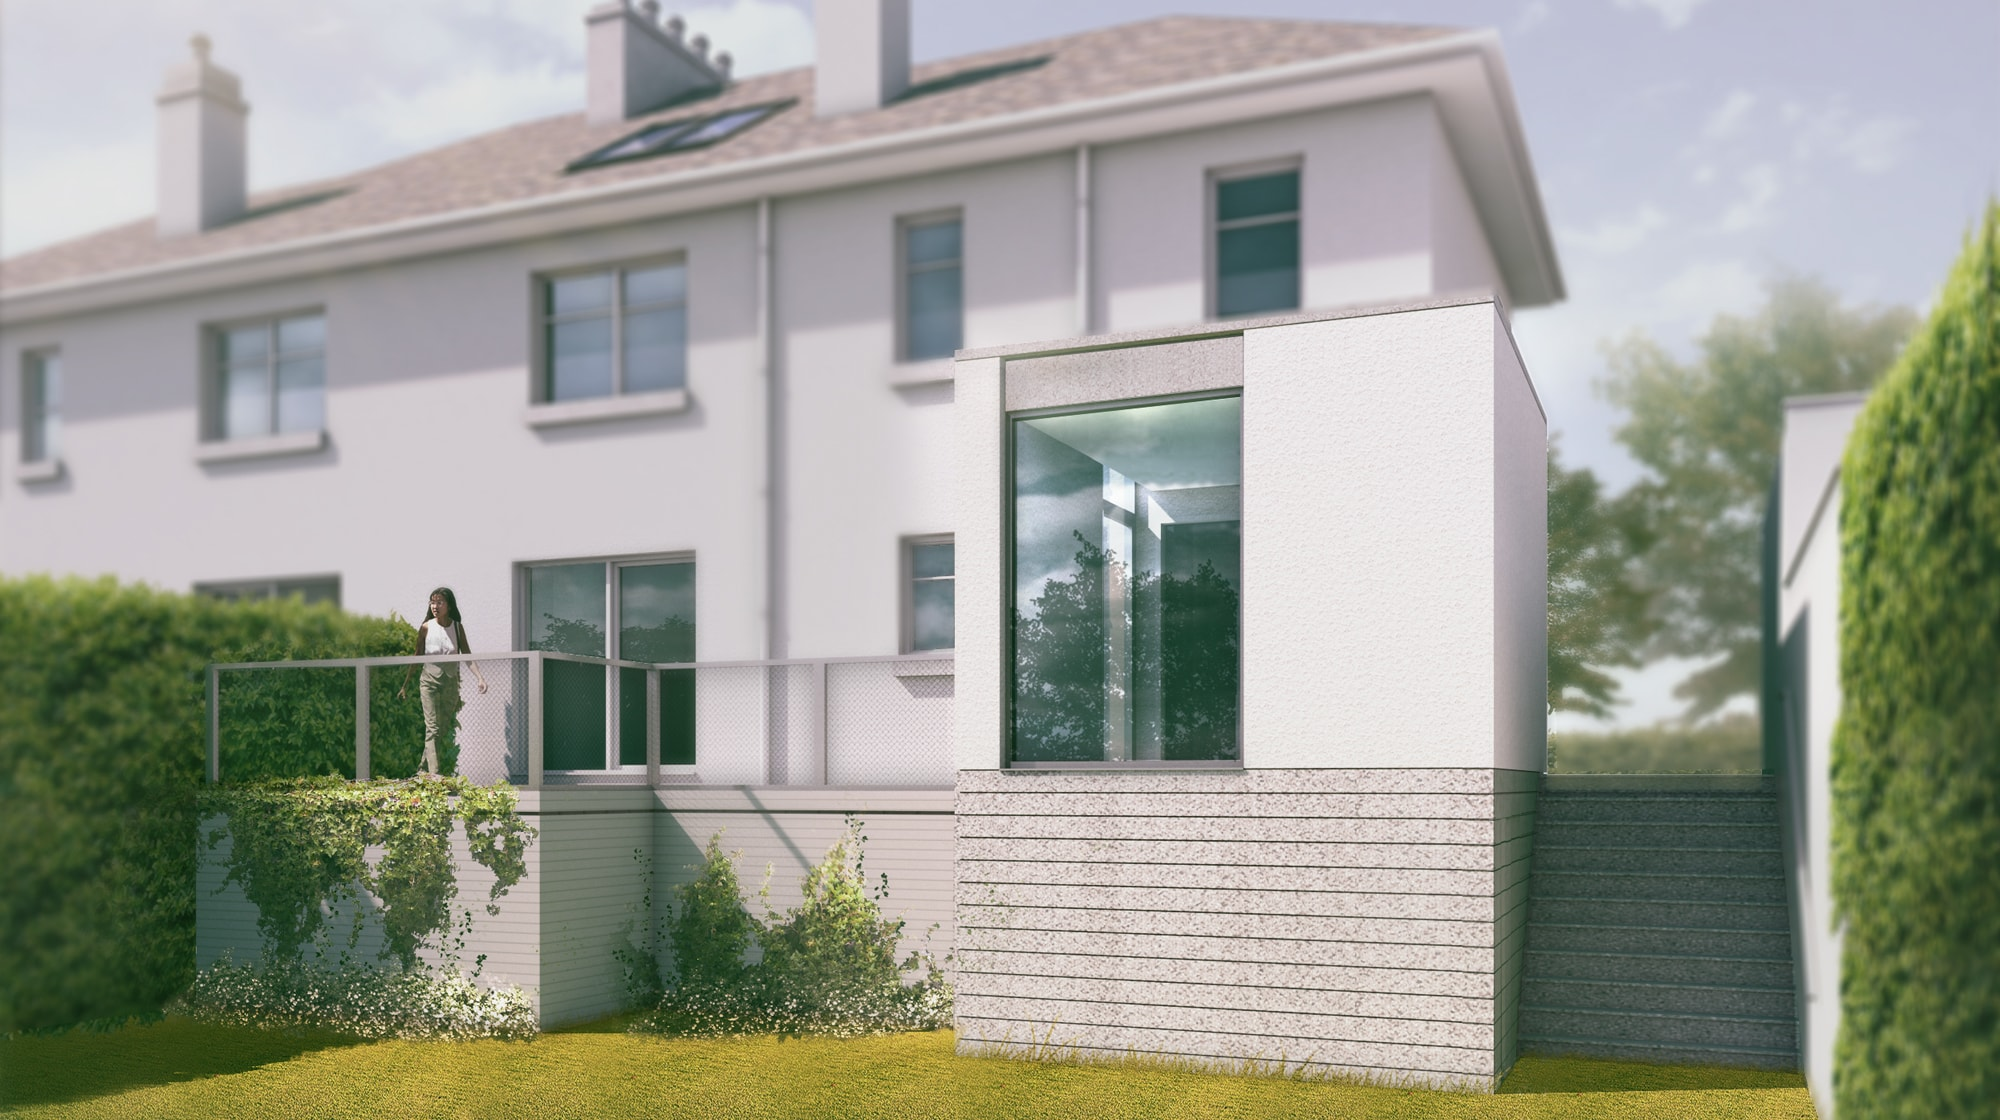 Planning Permission for cubic house extension,